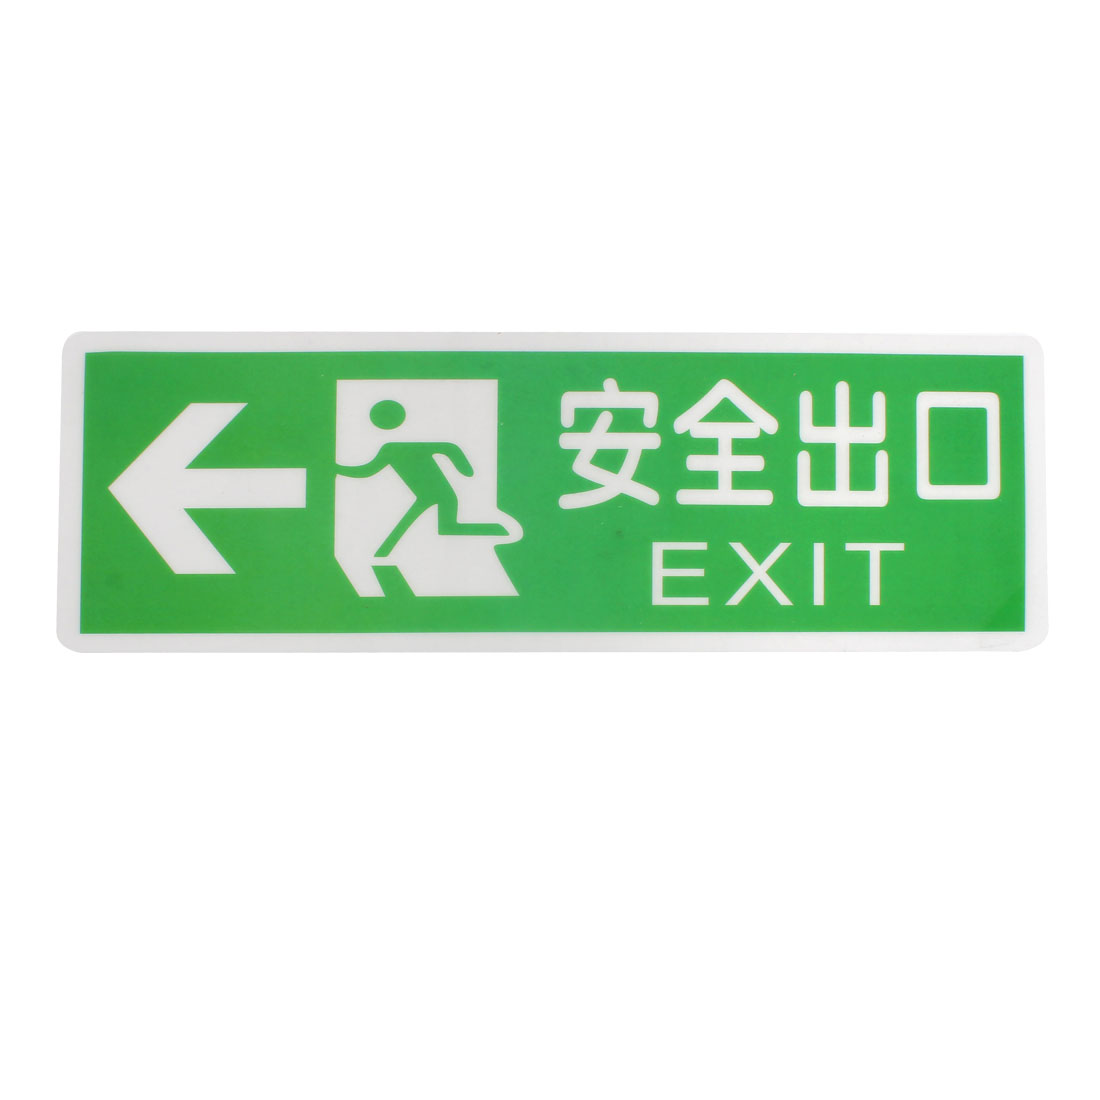 29.5 x 11.5cm Green White Self Adhesive Exit Wall Sign Notice Caution Warning Sticker Decal